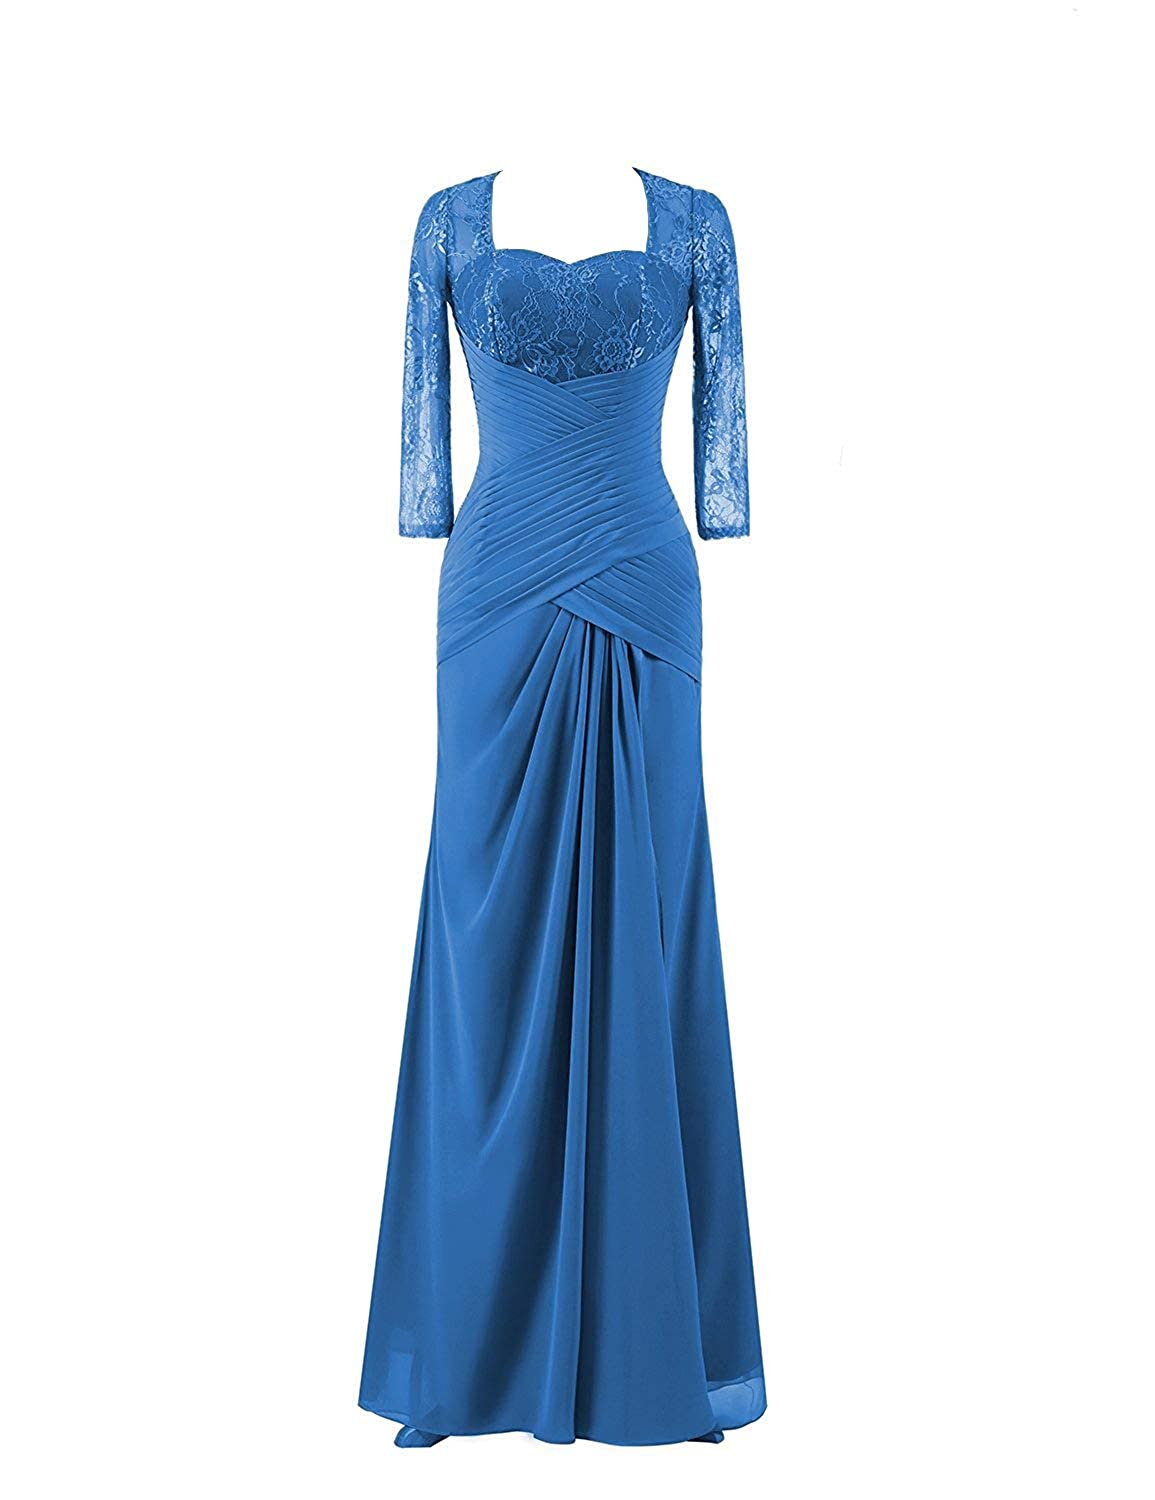 bluee Mother of The Bride Dresses with Long Sleeves Plus Size Evening Gown Lace Mothers Dress Formal Gowns